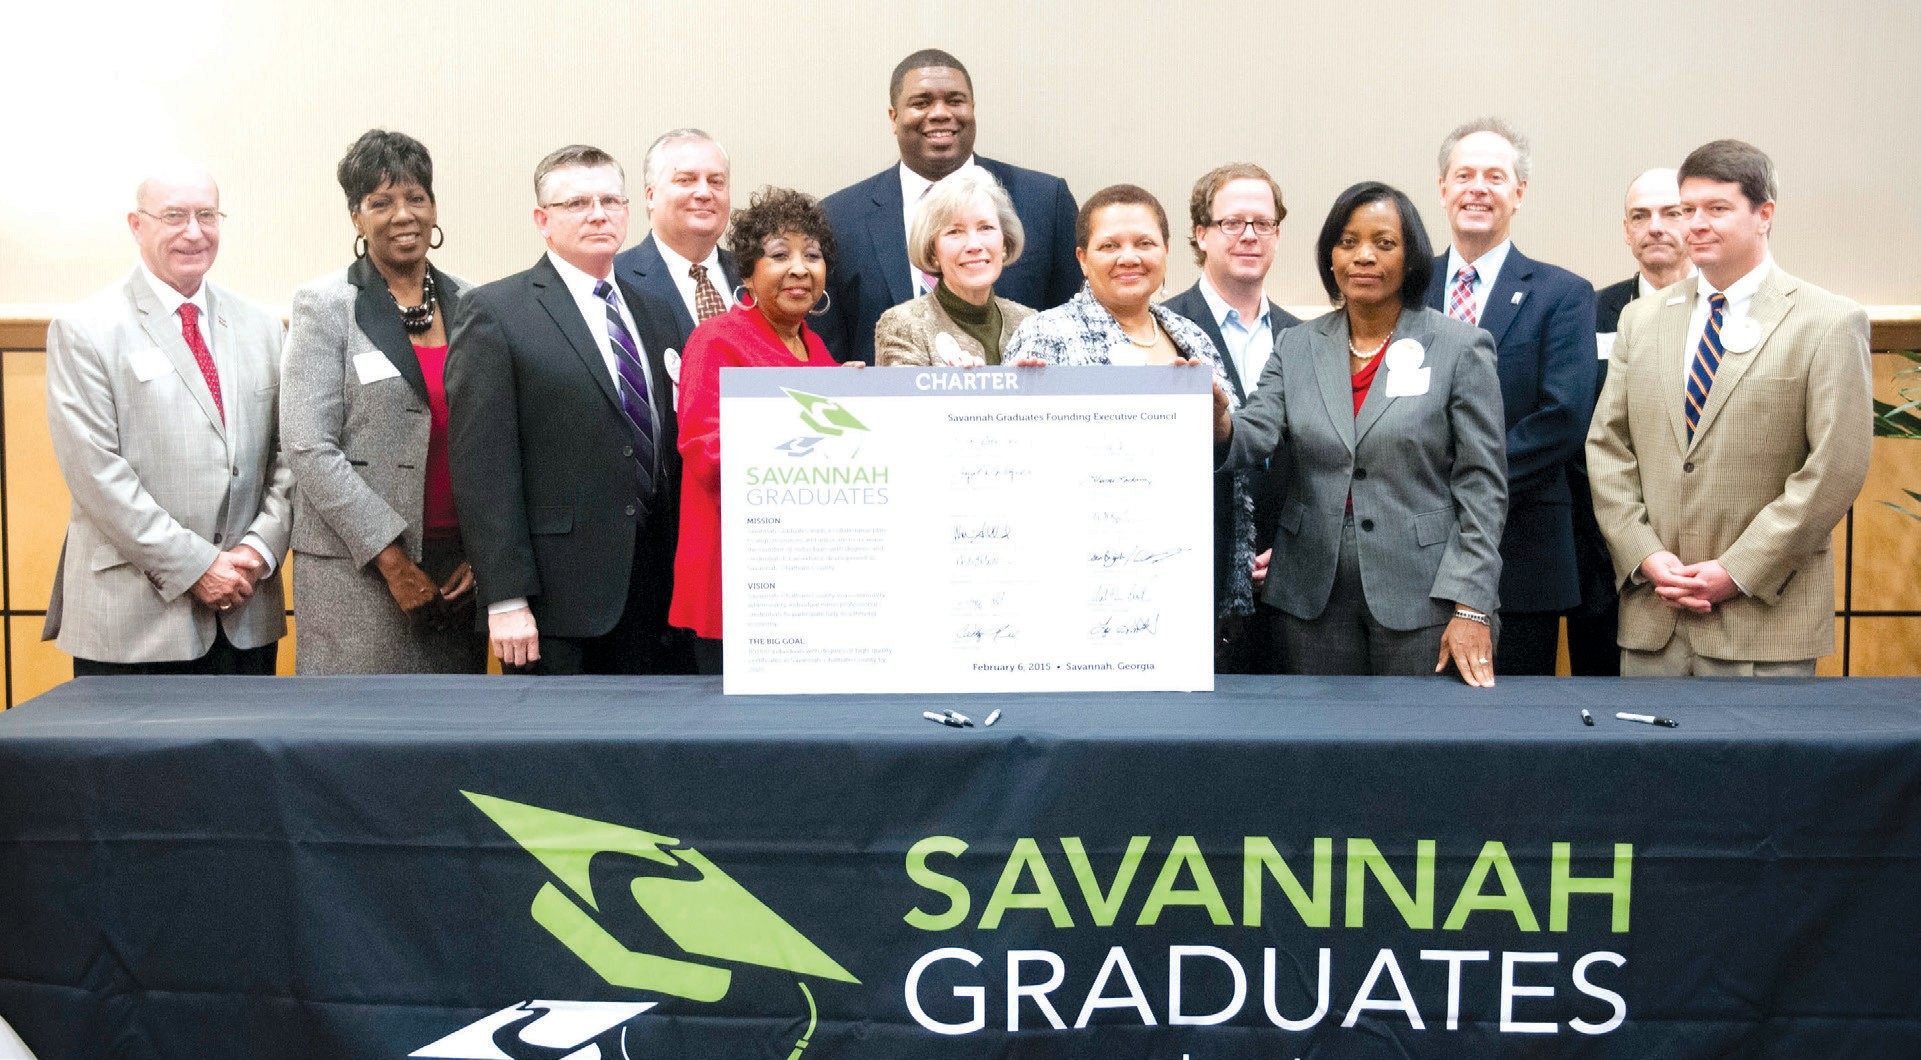 The Savannah Graduates Executive Council made a commitment to take a leadership role to increase the number of individuals in Savannah-Chatham County with post-high school credentials.